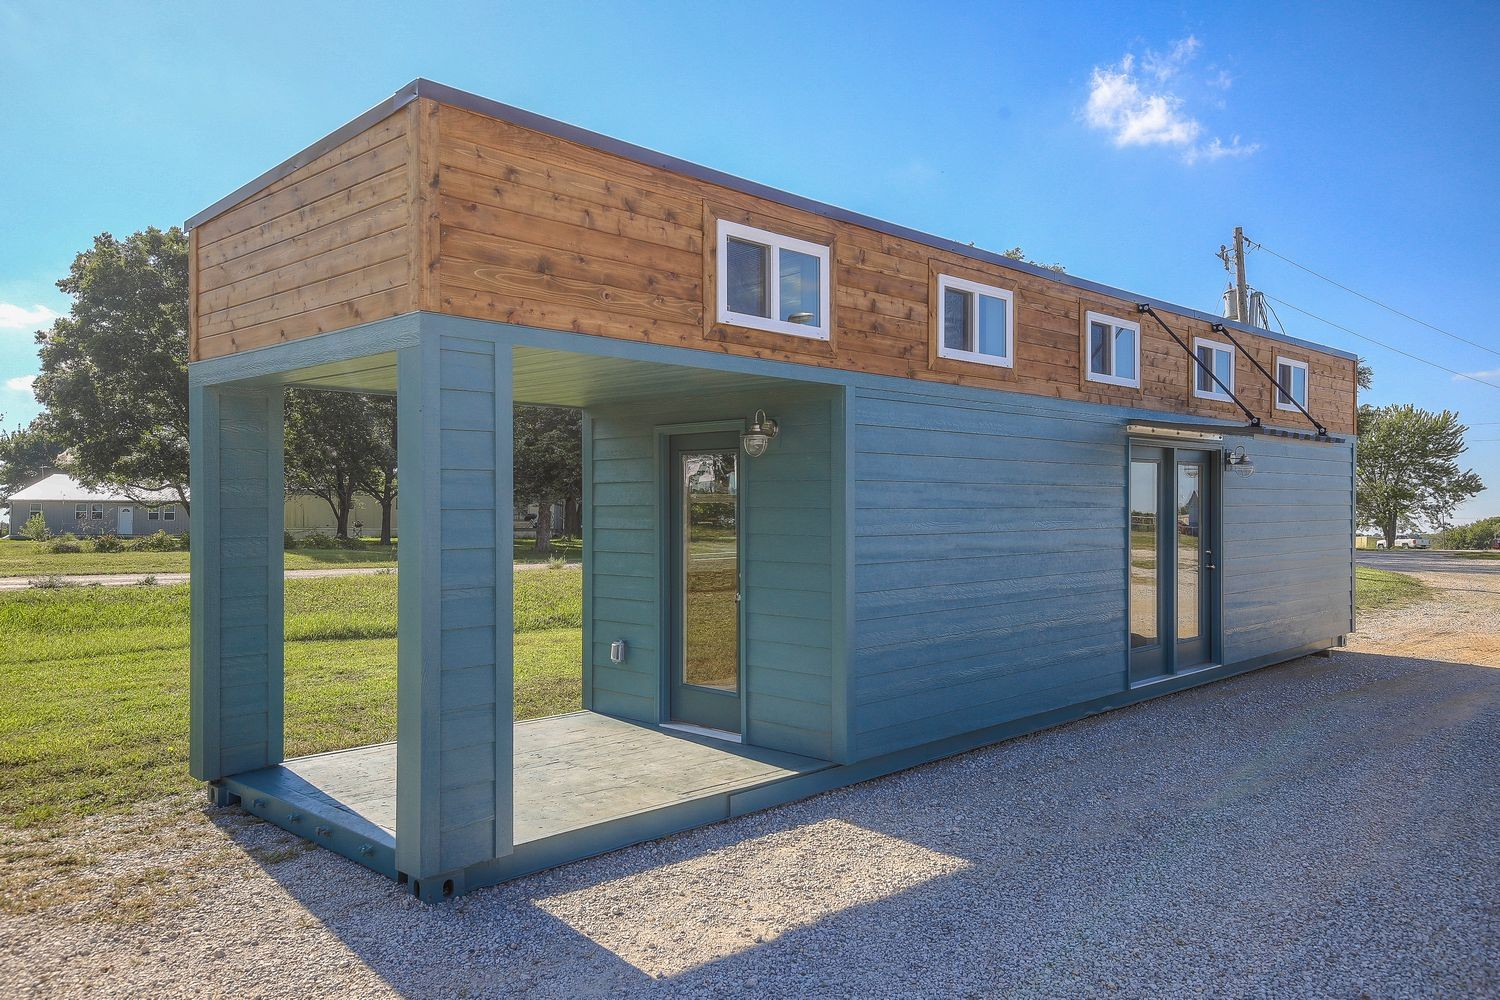 Living In A Shipping Container 5 shipping container homes you can order right now - curbed